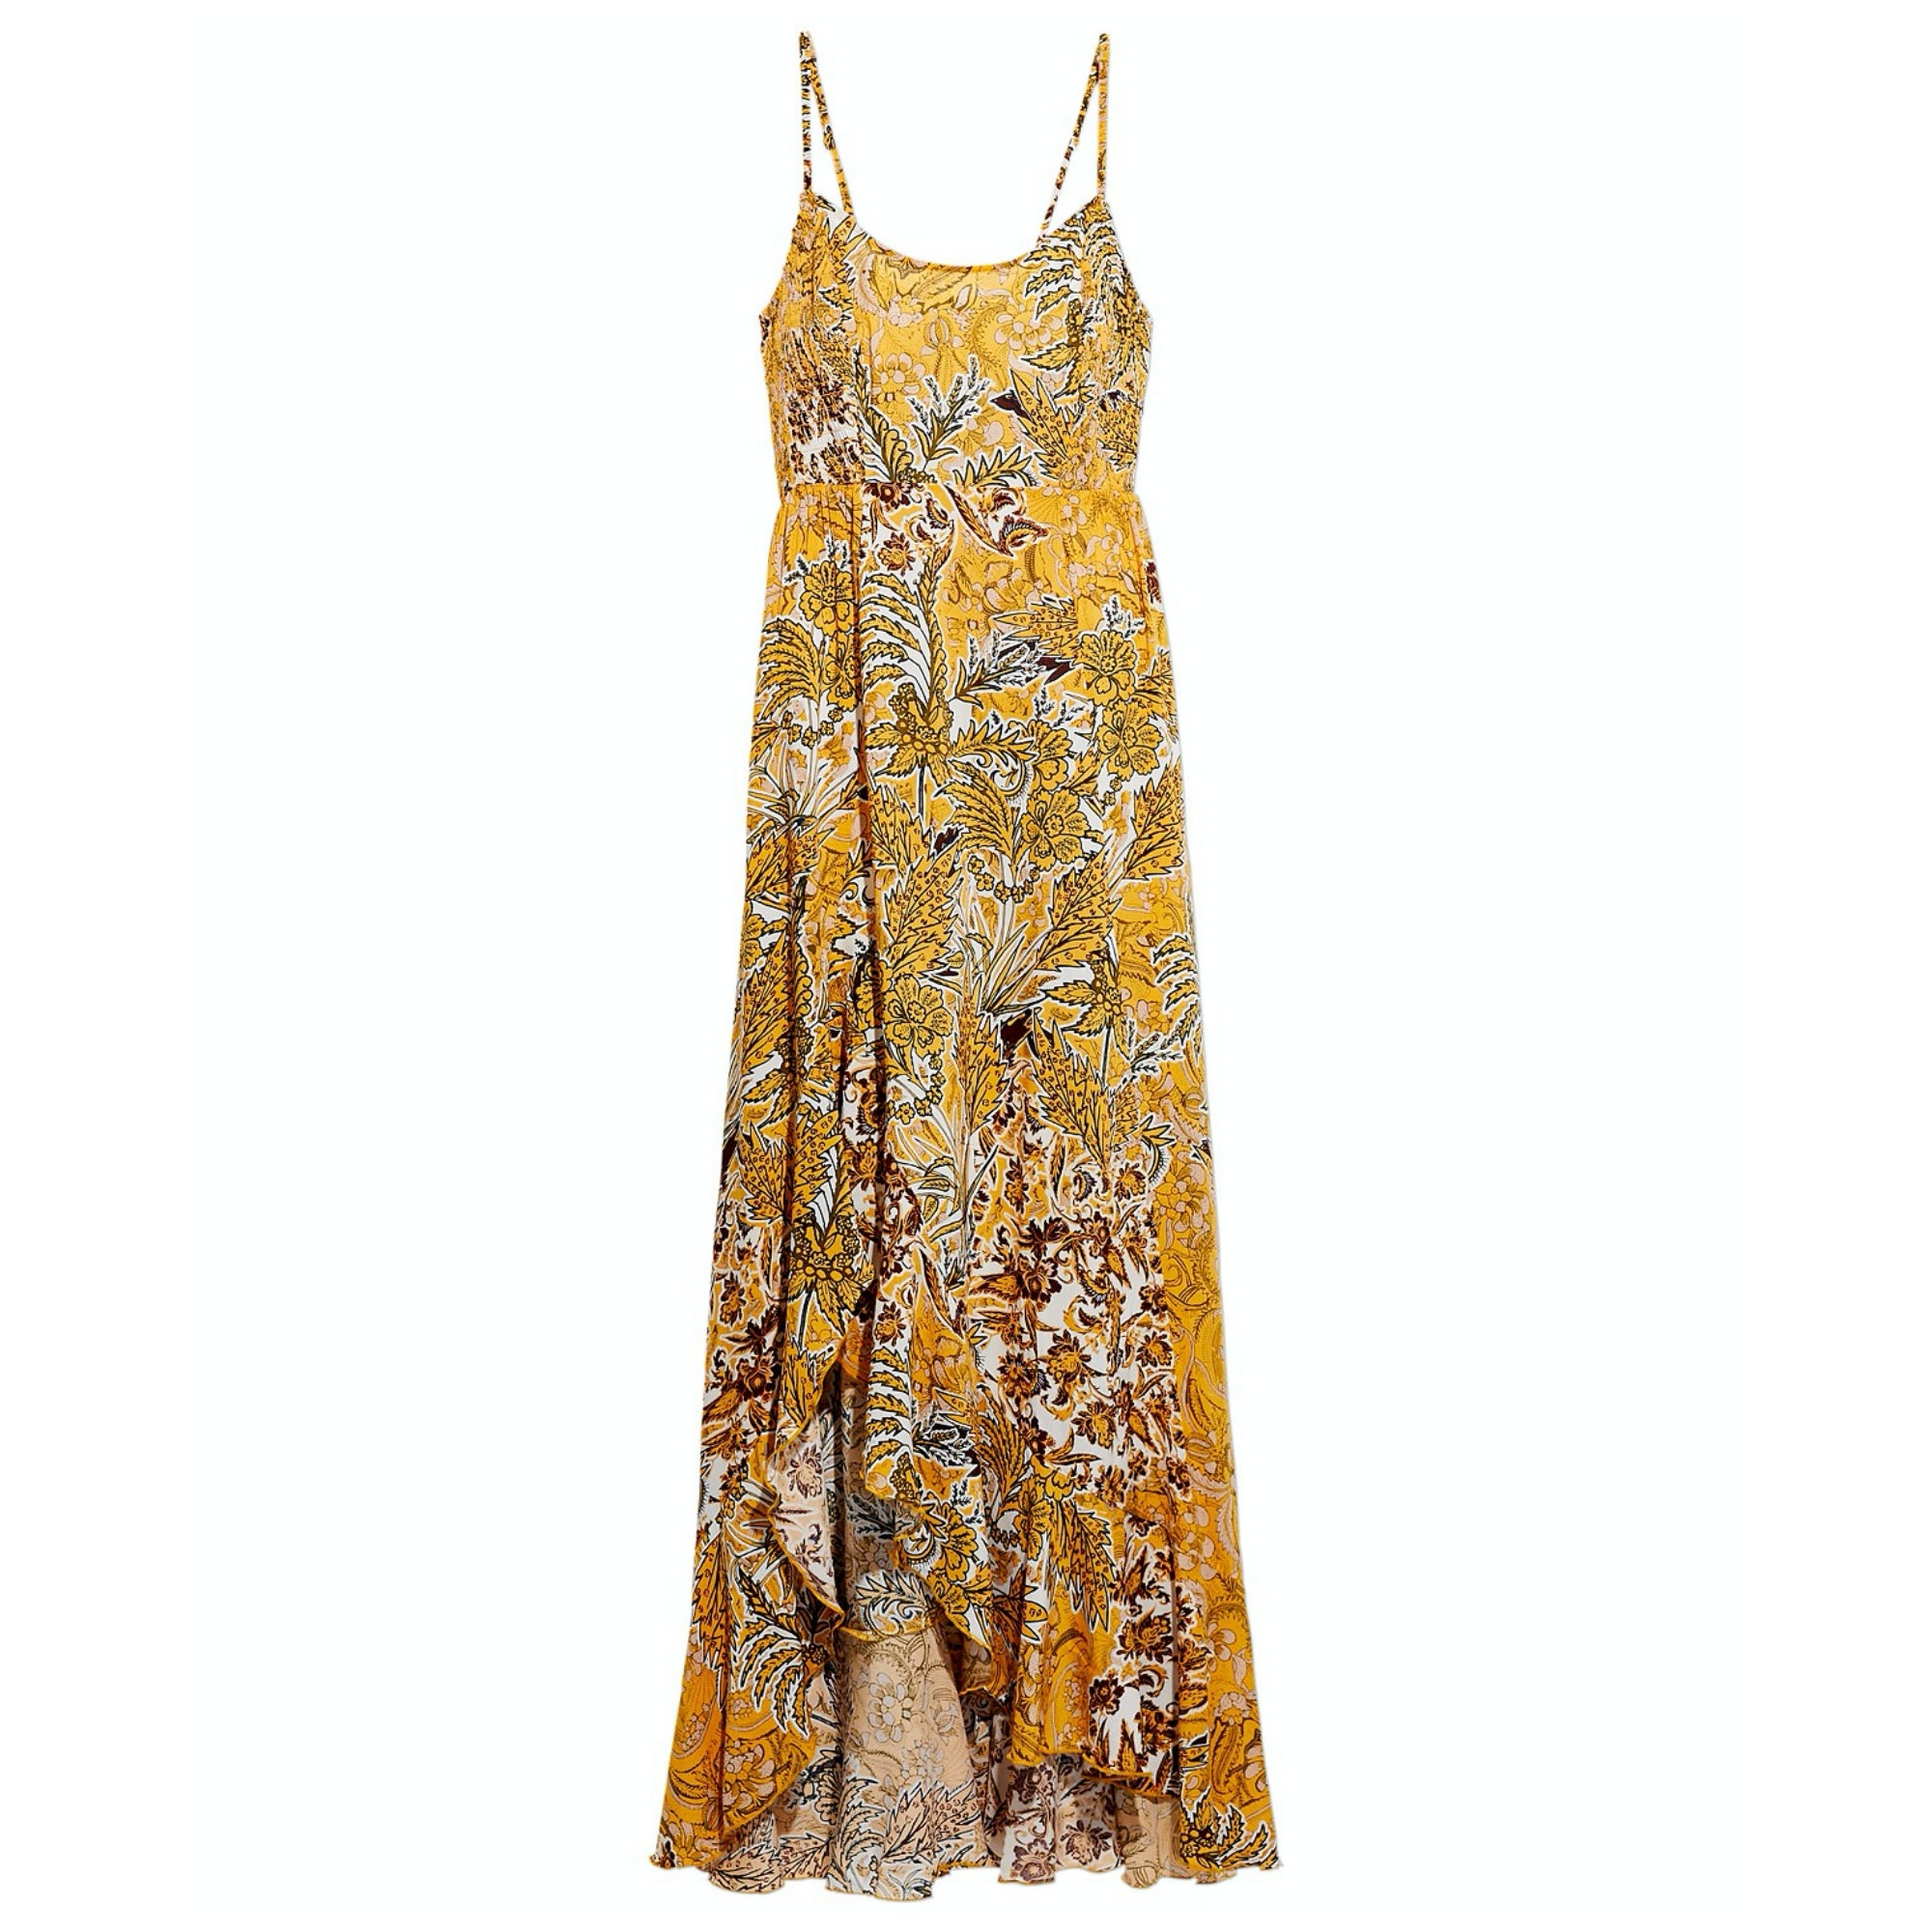 Free People Forever Yours Smocked Slip Maxi Dress - Macy's